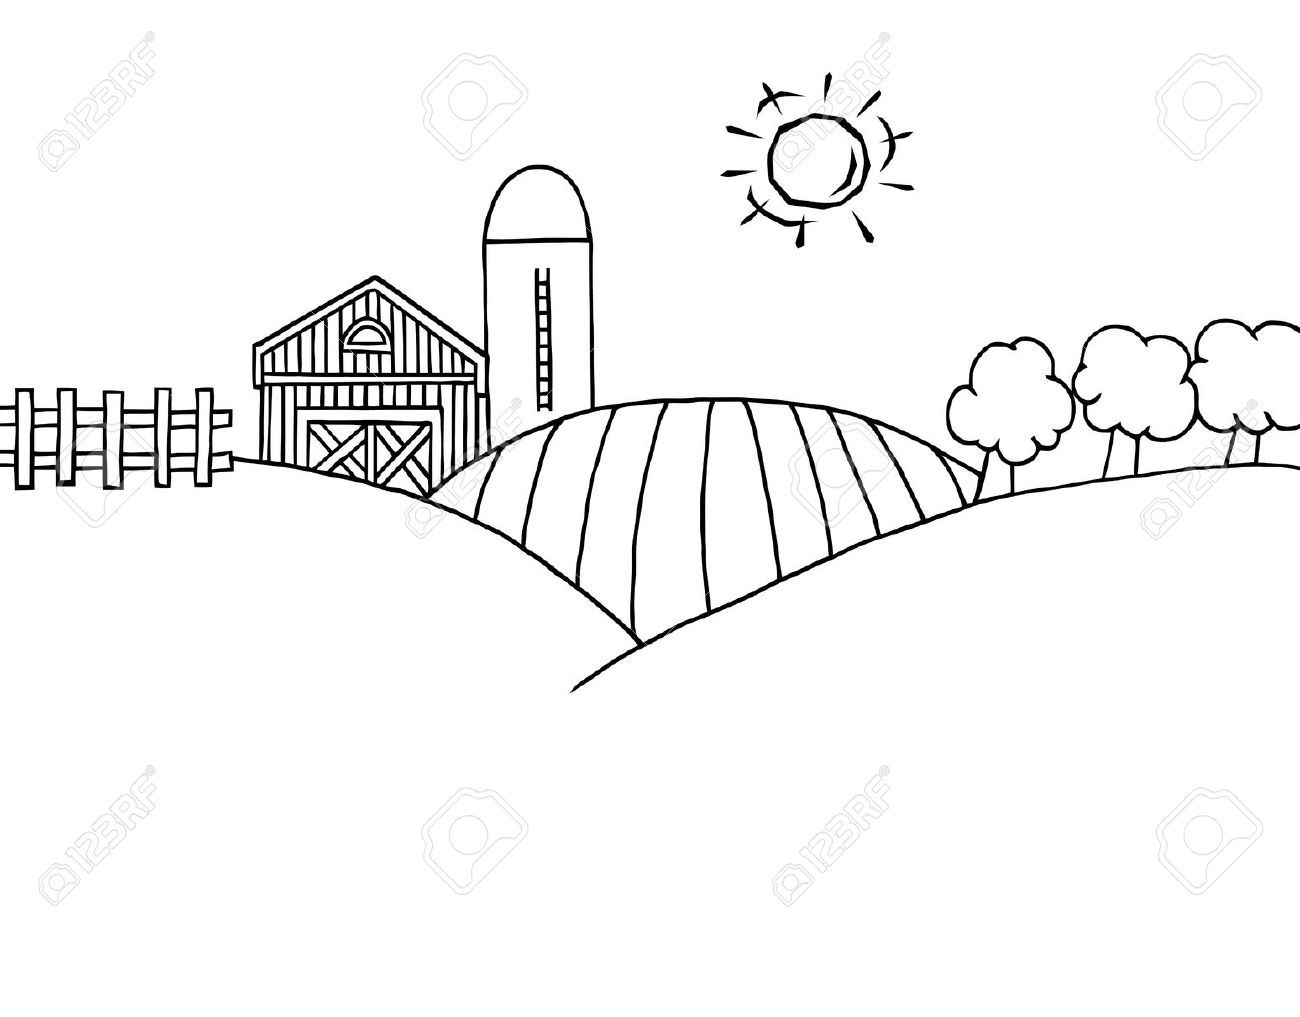 Barn Scene Coloring Page - Printable Coloring Pages | bible school ... for Farmhouse Cartoon Black And White  186ref